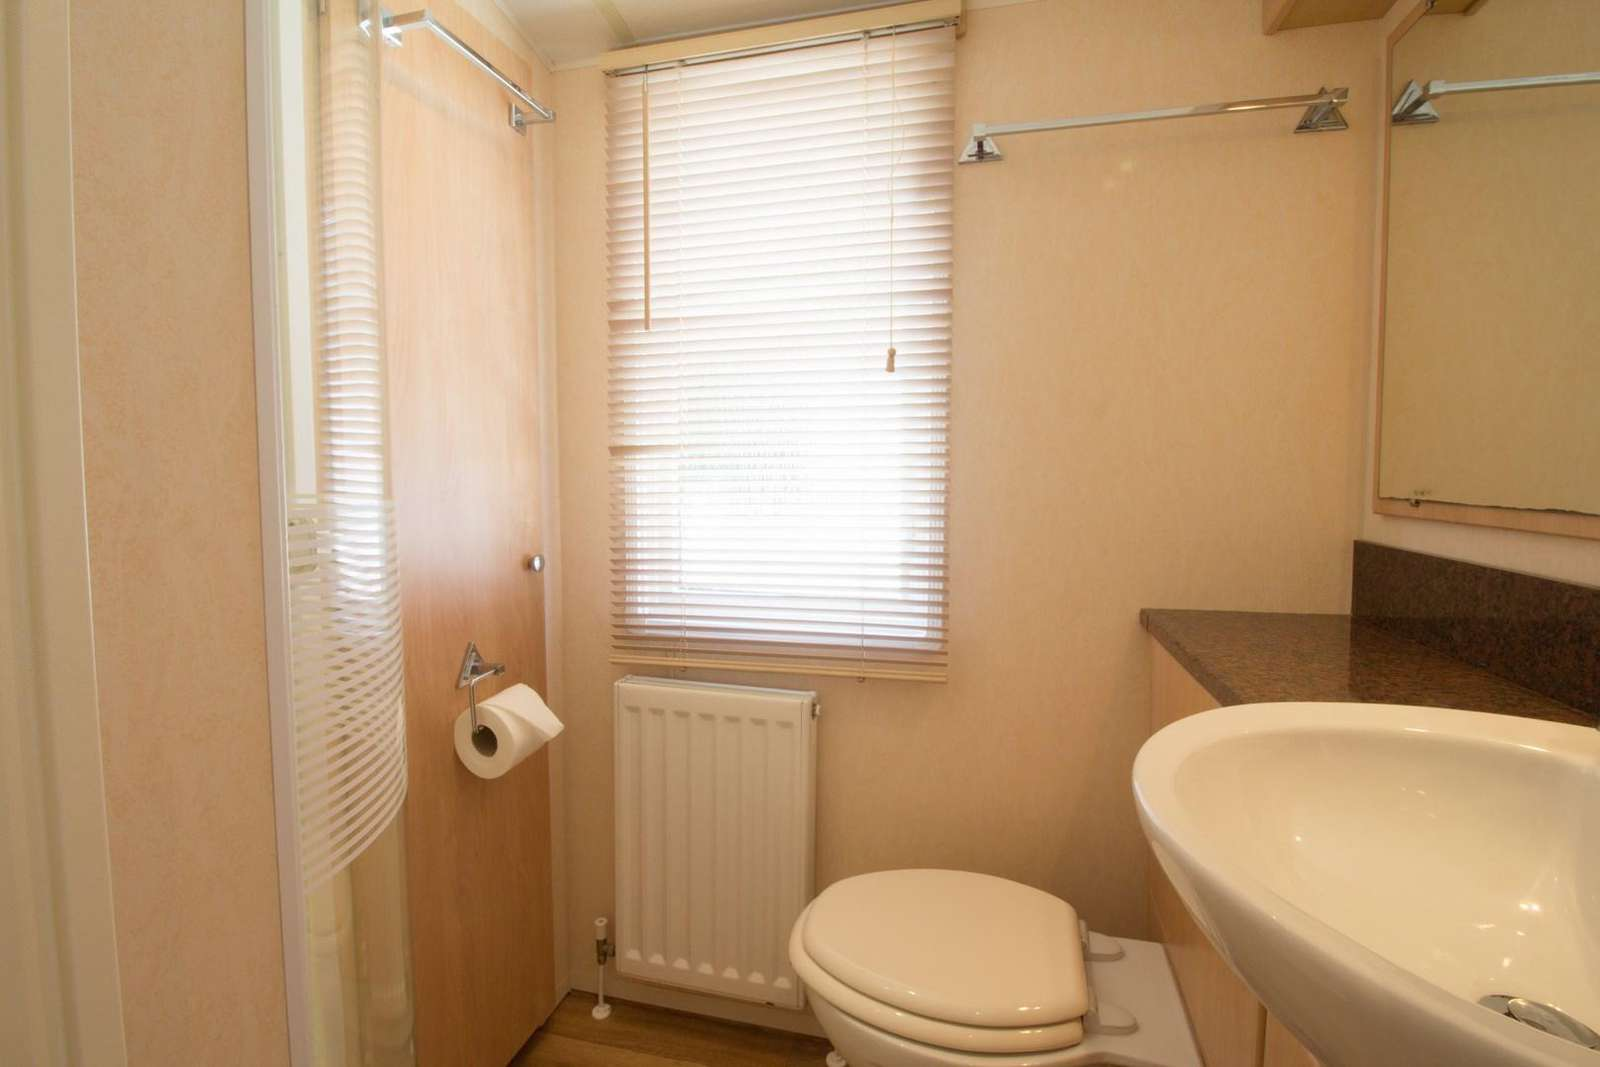 We ensure that our holiday homes are cleaned to a high standard